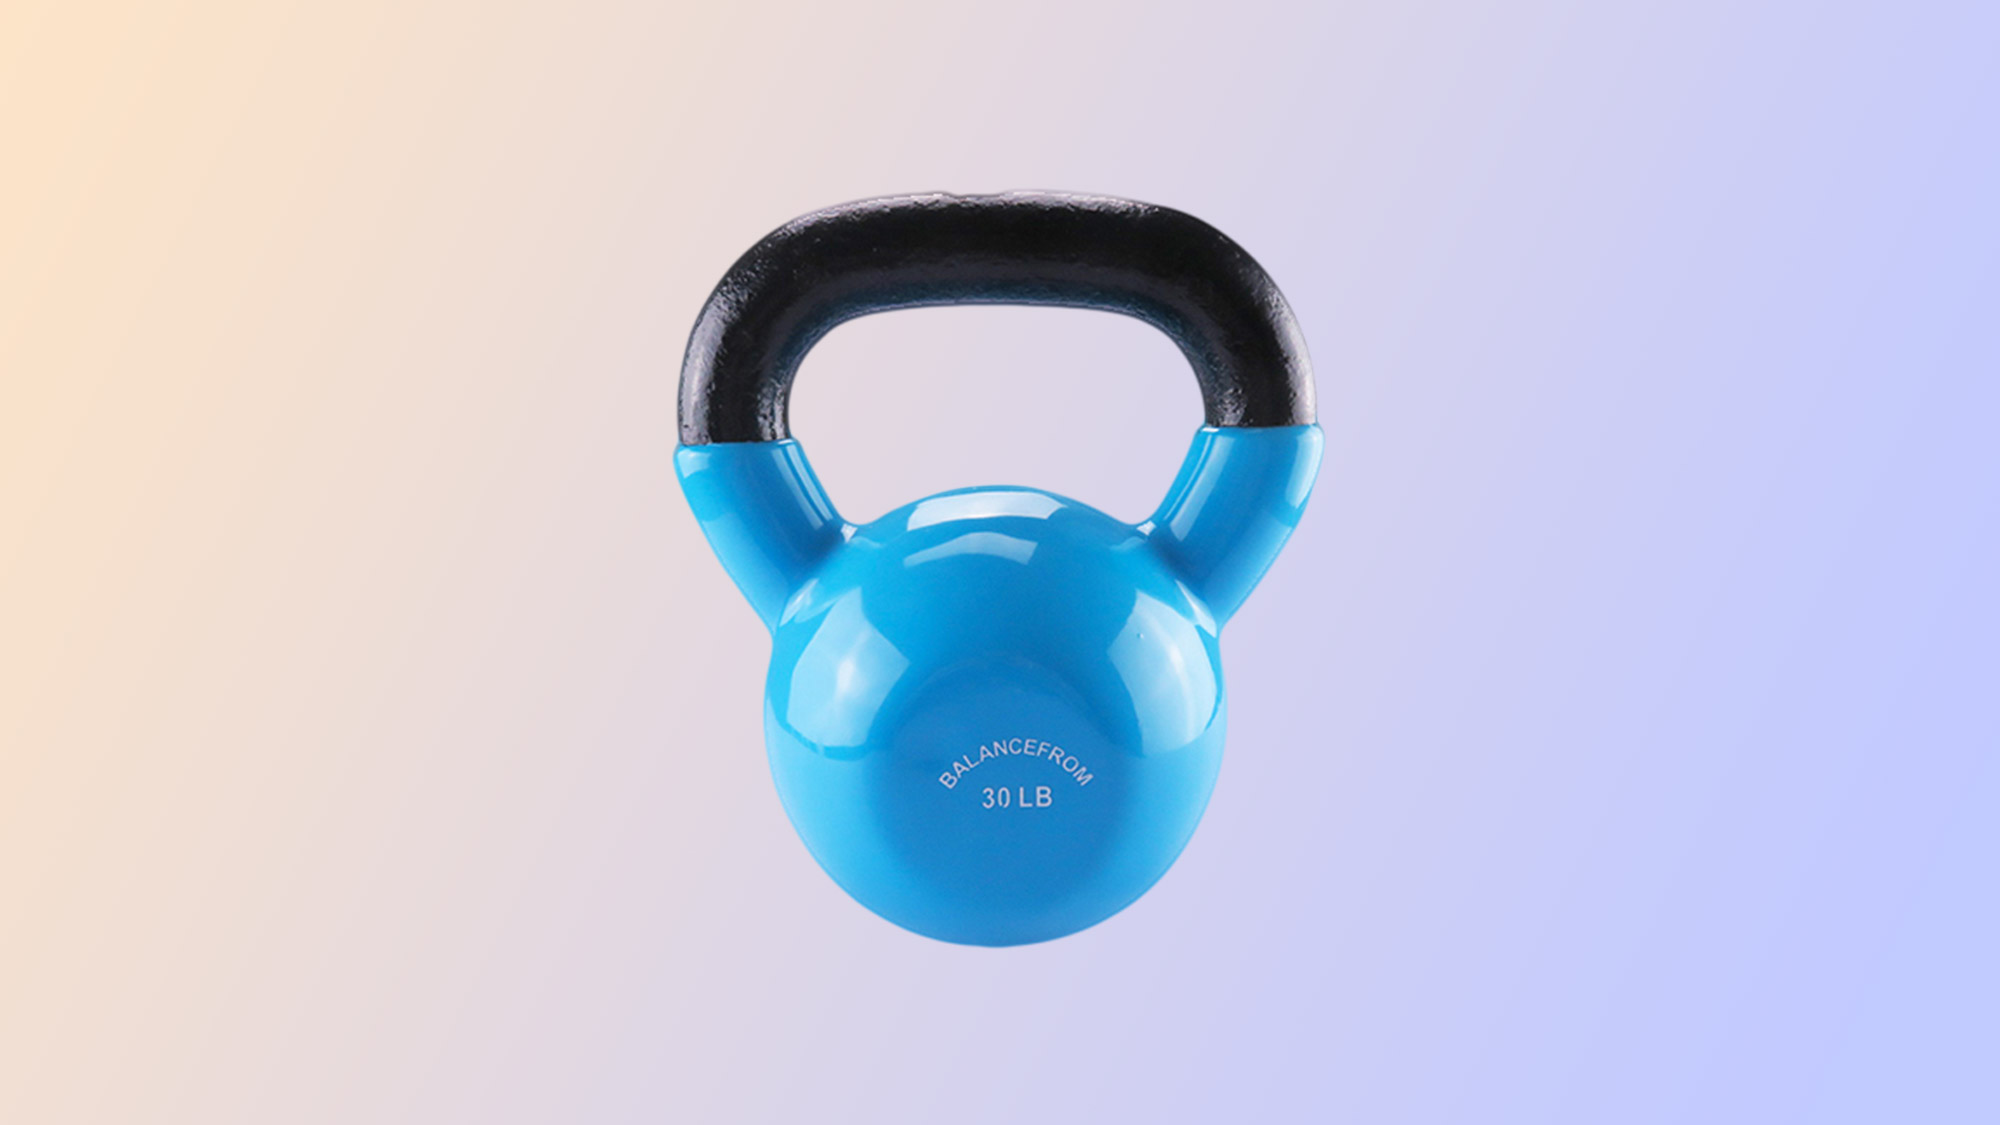 Best home gym equipment: BalanceFrom All-Purpose Color Vinyl Coated Kettlebells